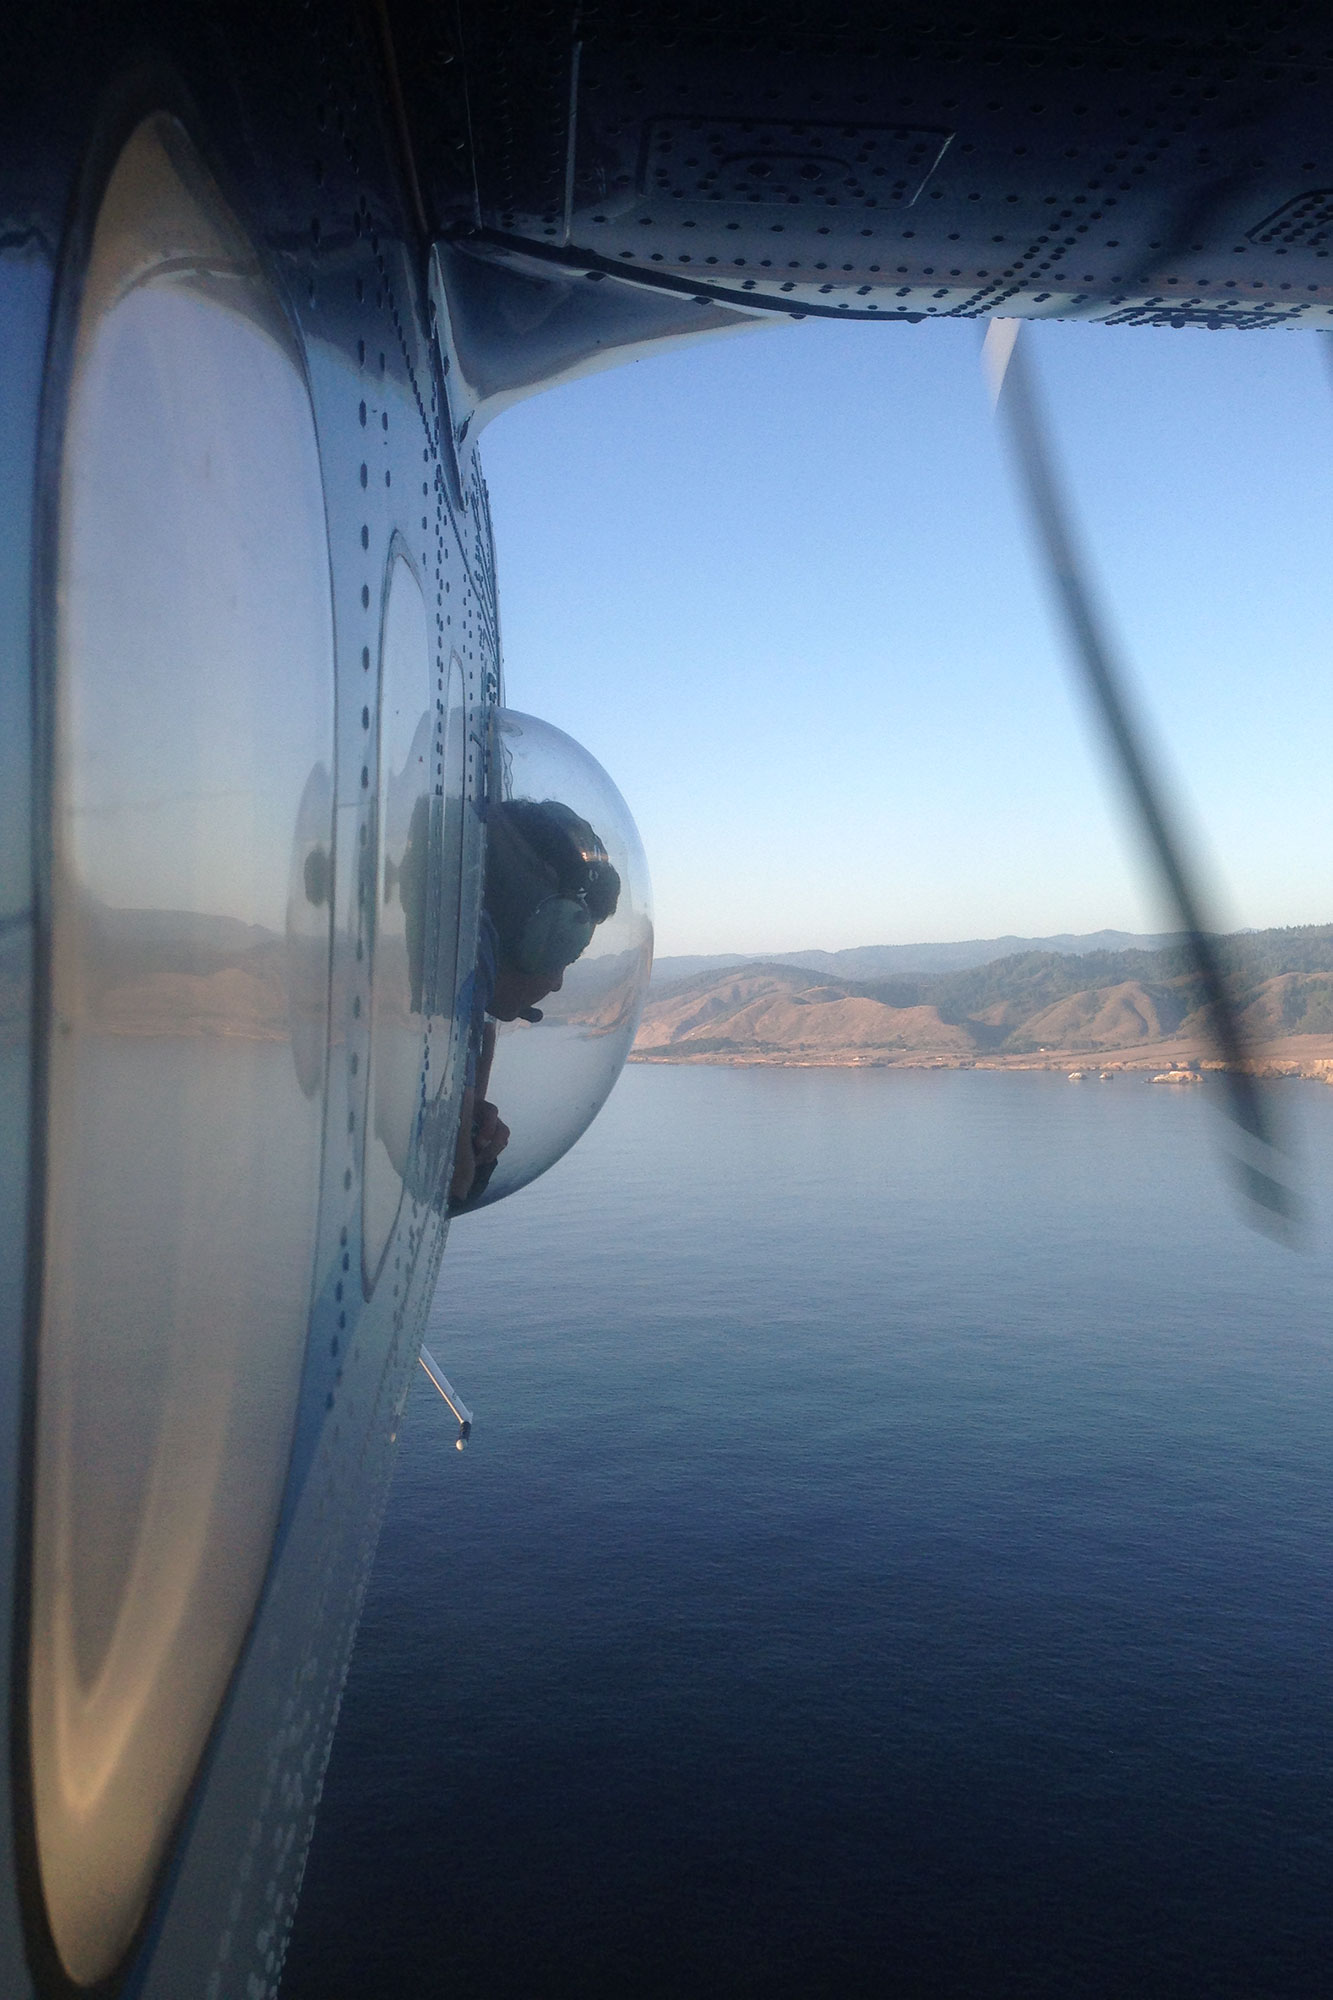 Scientist peering through airplane porthole at the ocean below